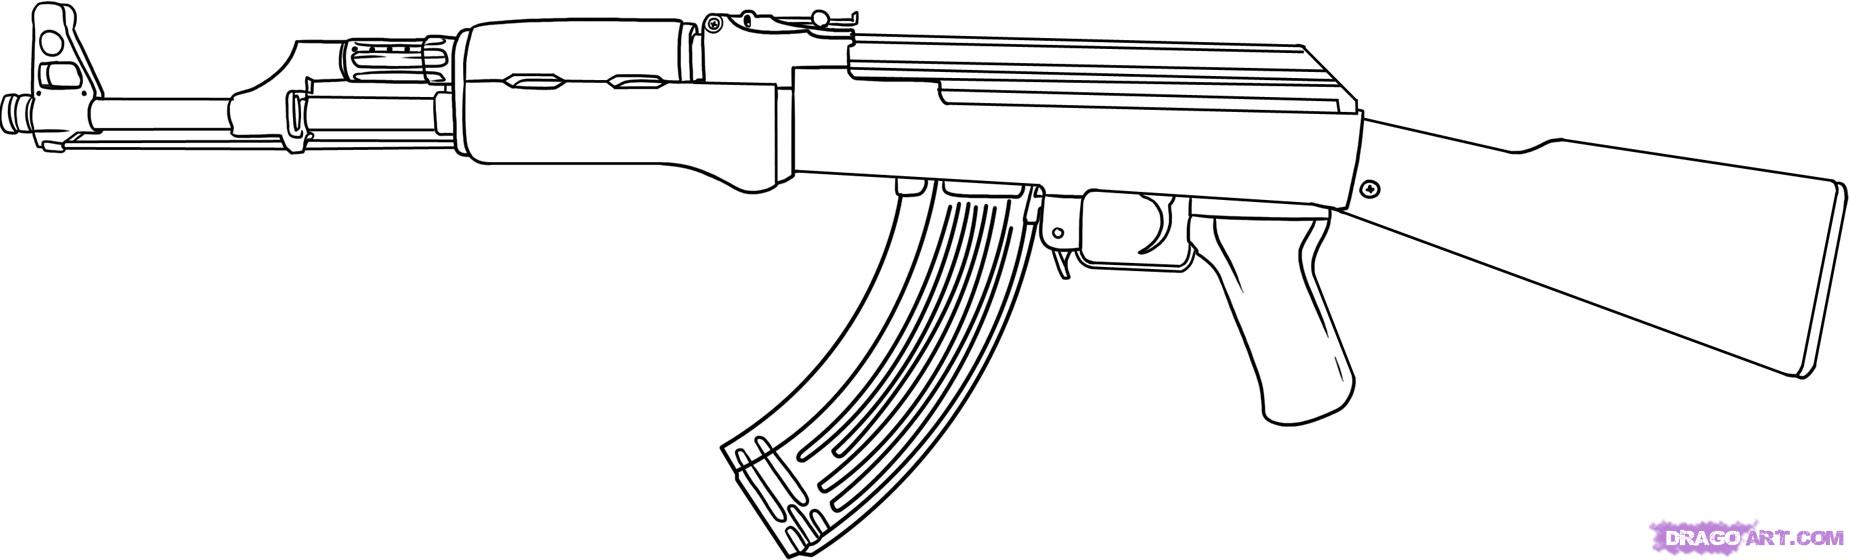 Nerf Coloring Pages at GetDrawings.com   Free for personal use Nerf ...